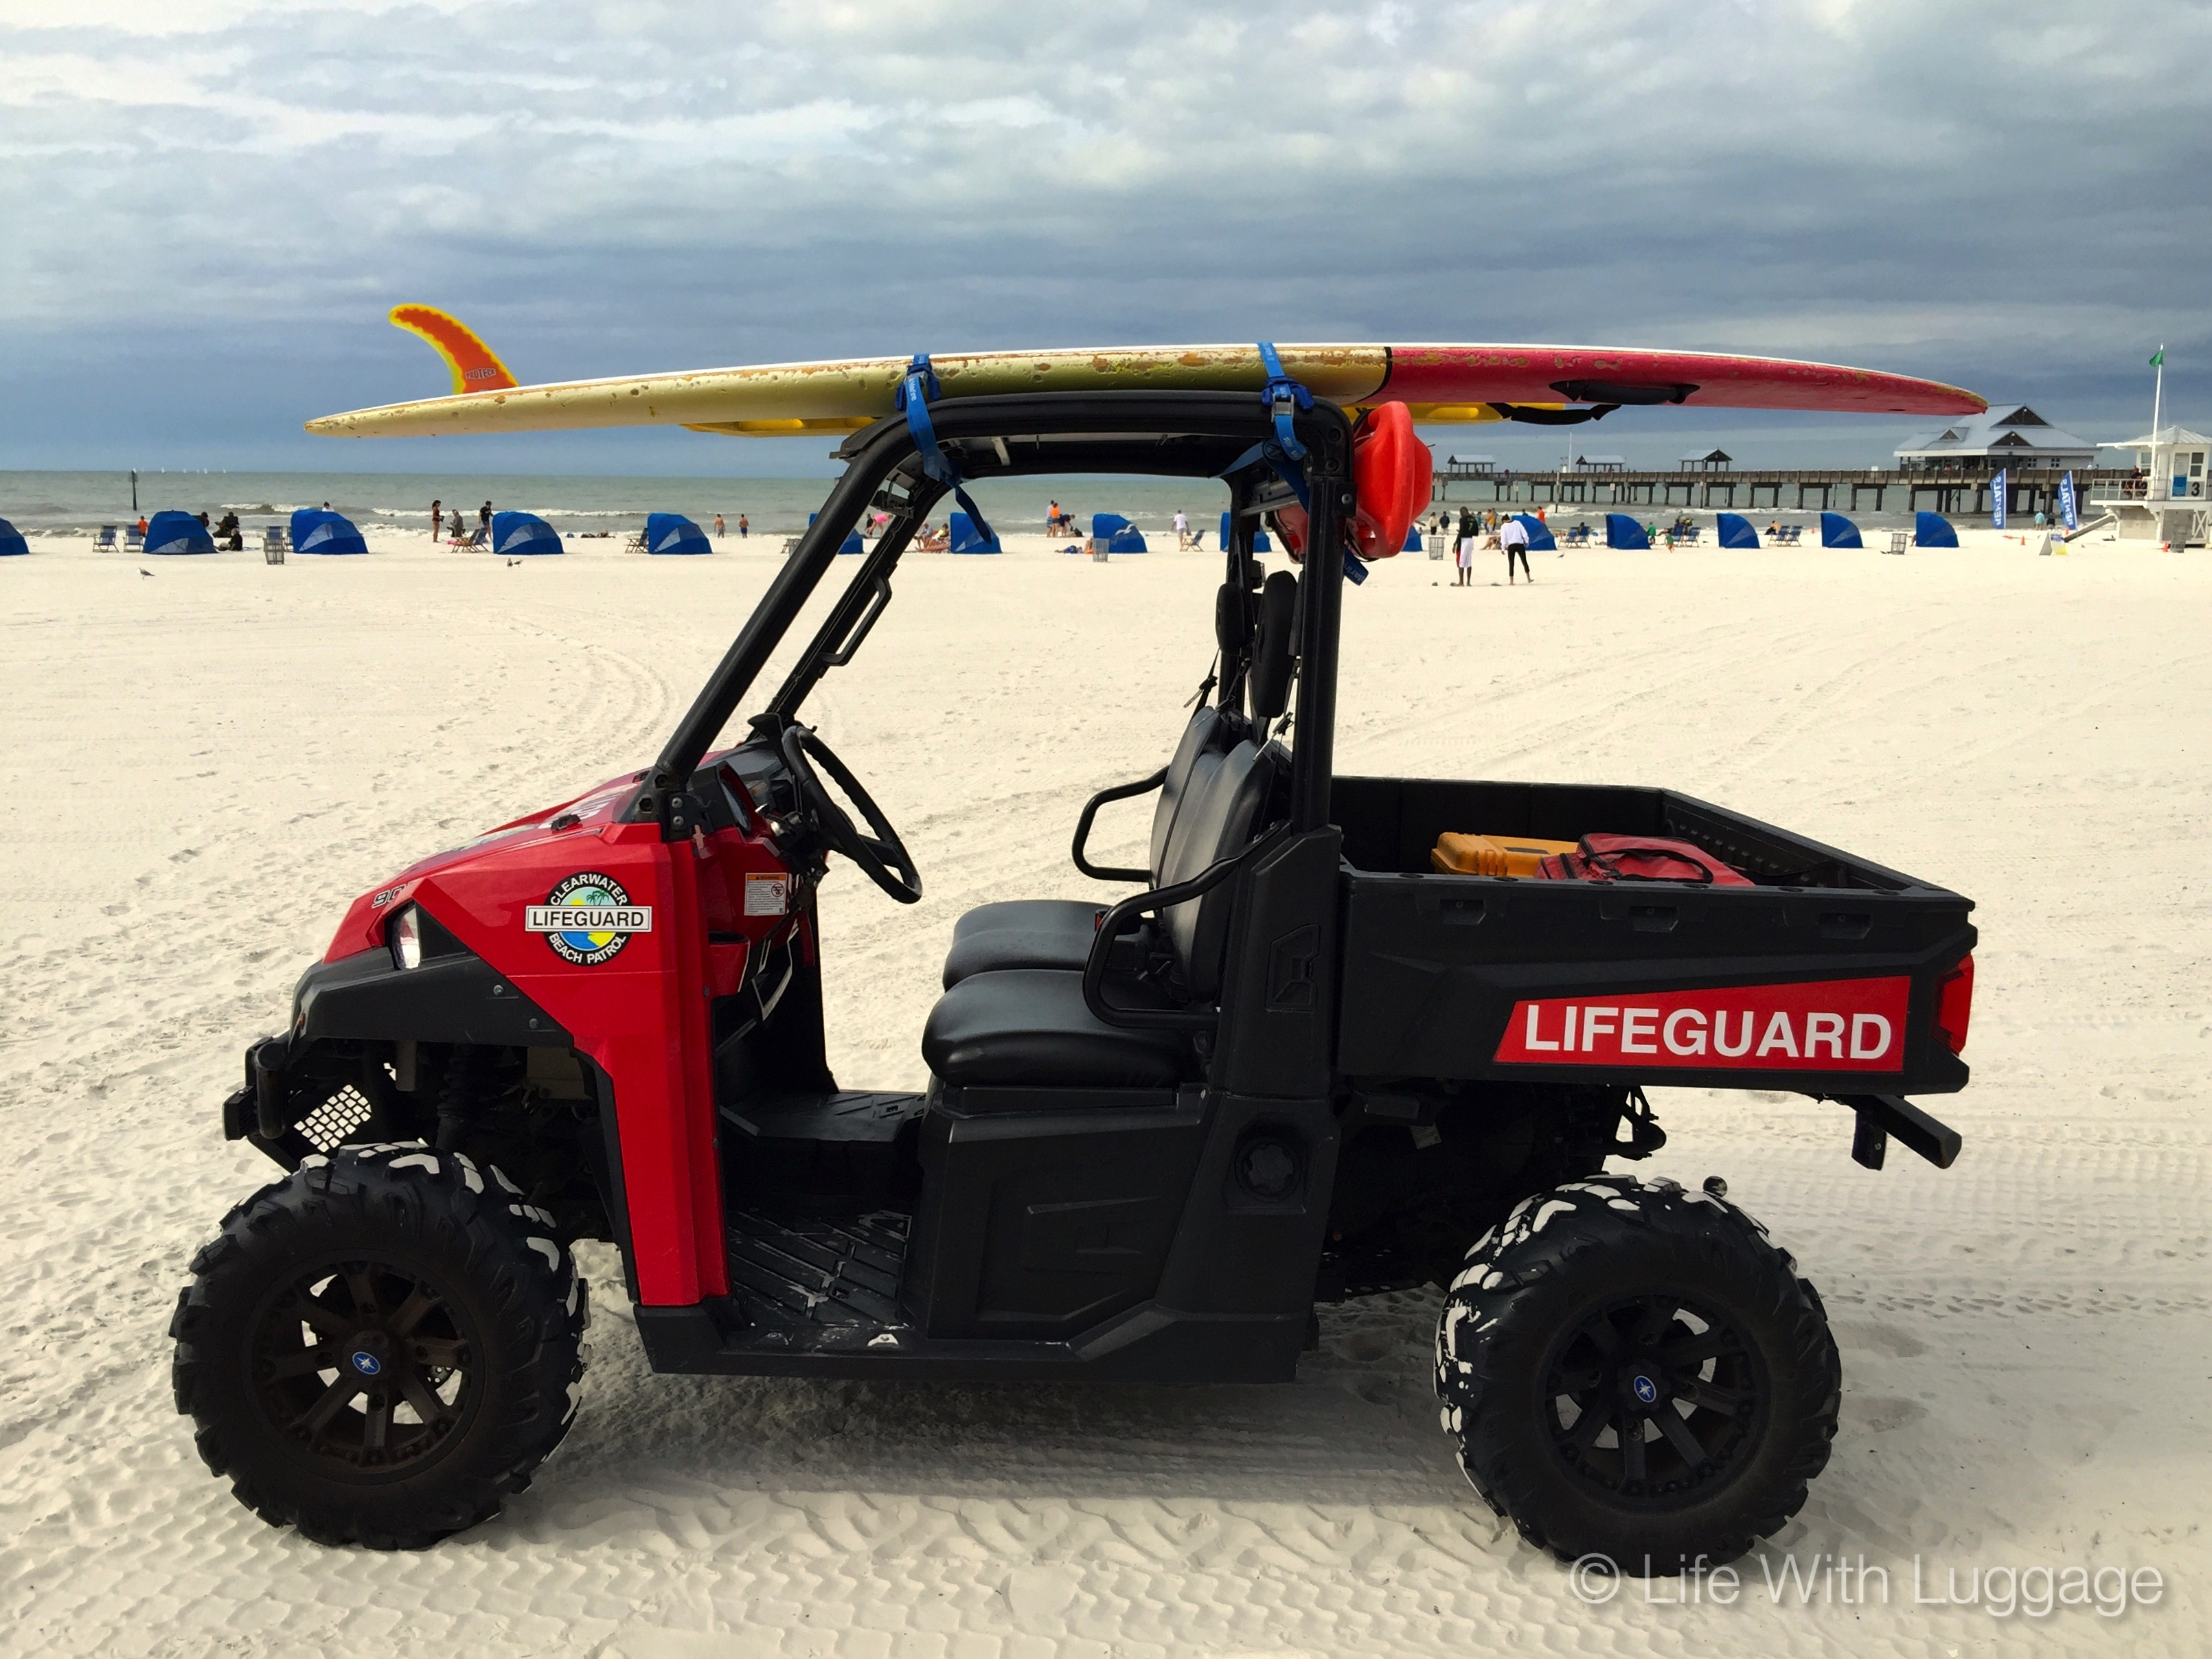 Surfboard lifeguard Florida